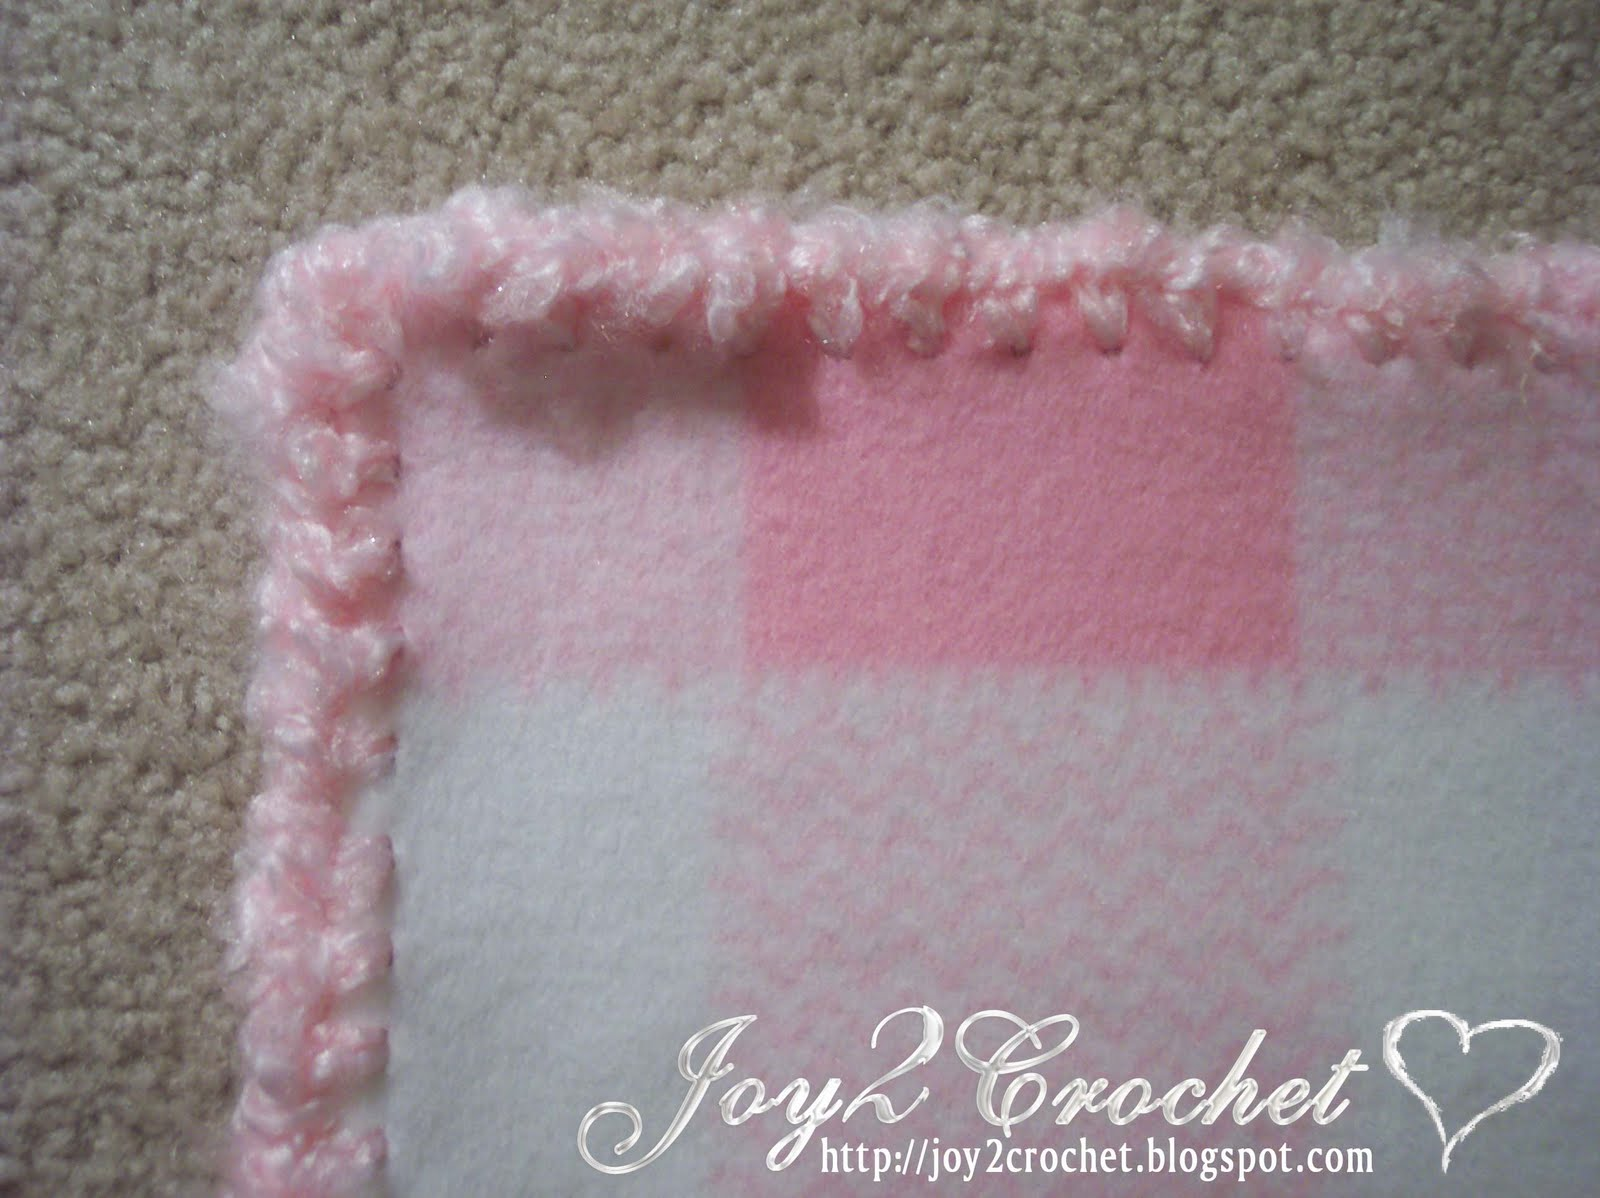 Crocheting Edges On Baby Blankets : Joy 2 Crochet: More Crocheted Fleece Baby Blankets